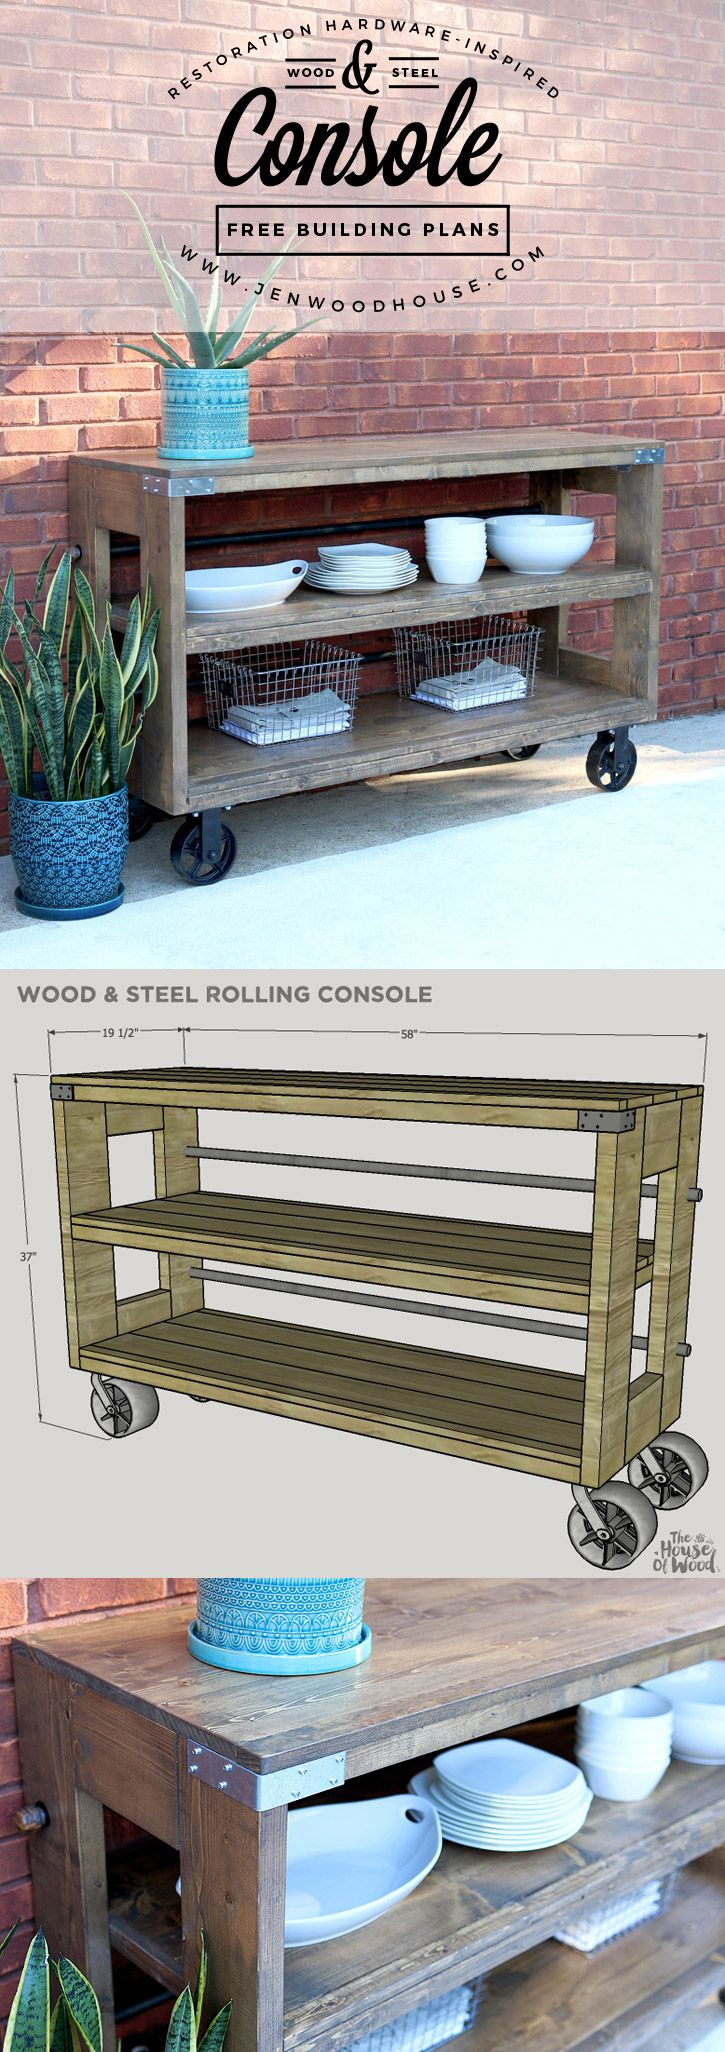 Restoration Hardware Wood and Steel Console | Restoration hardware ...